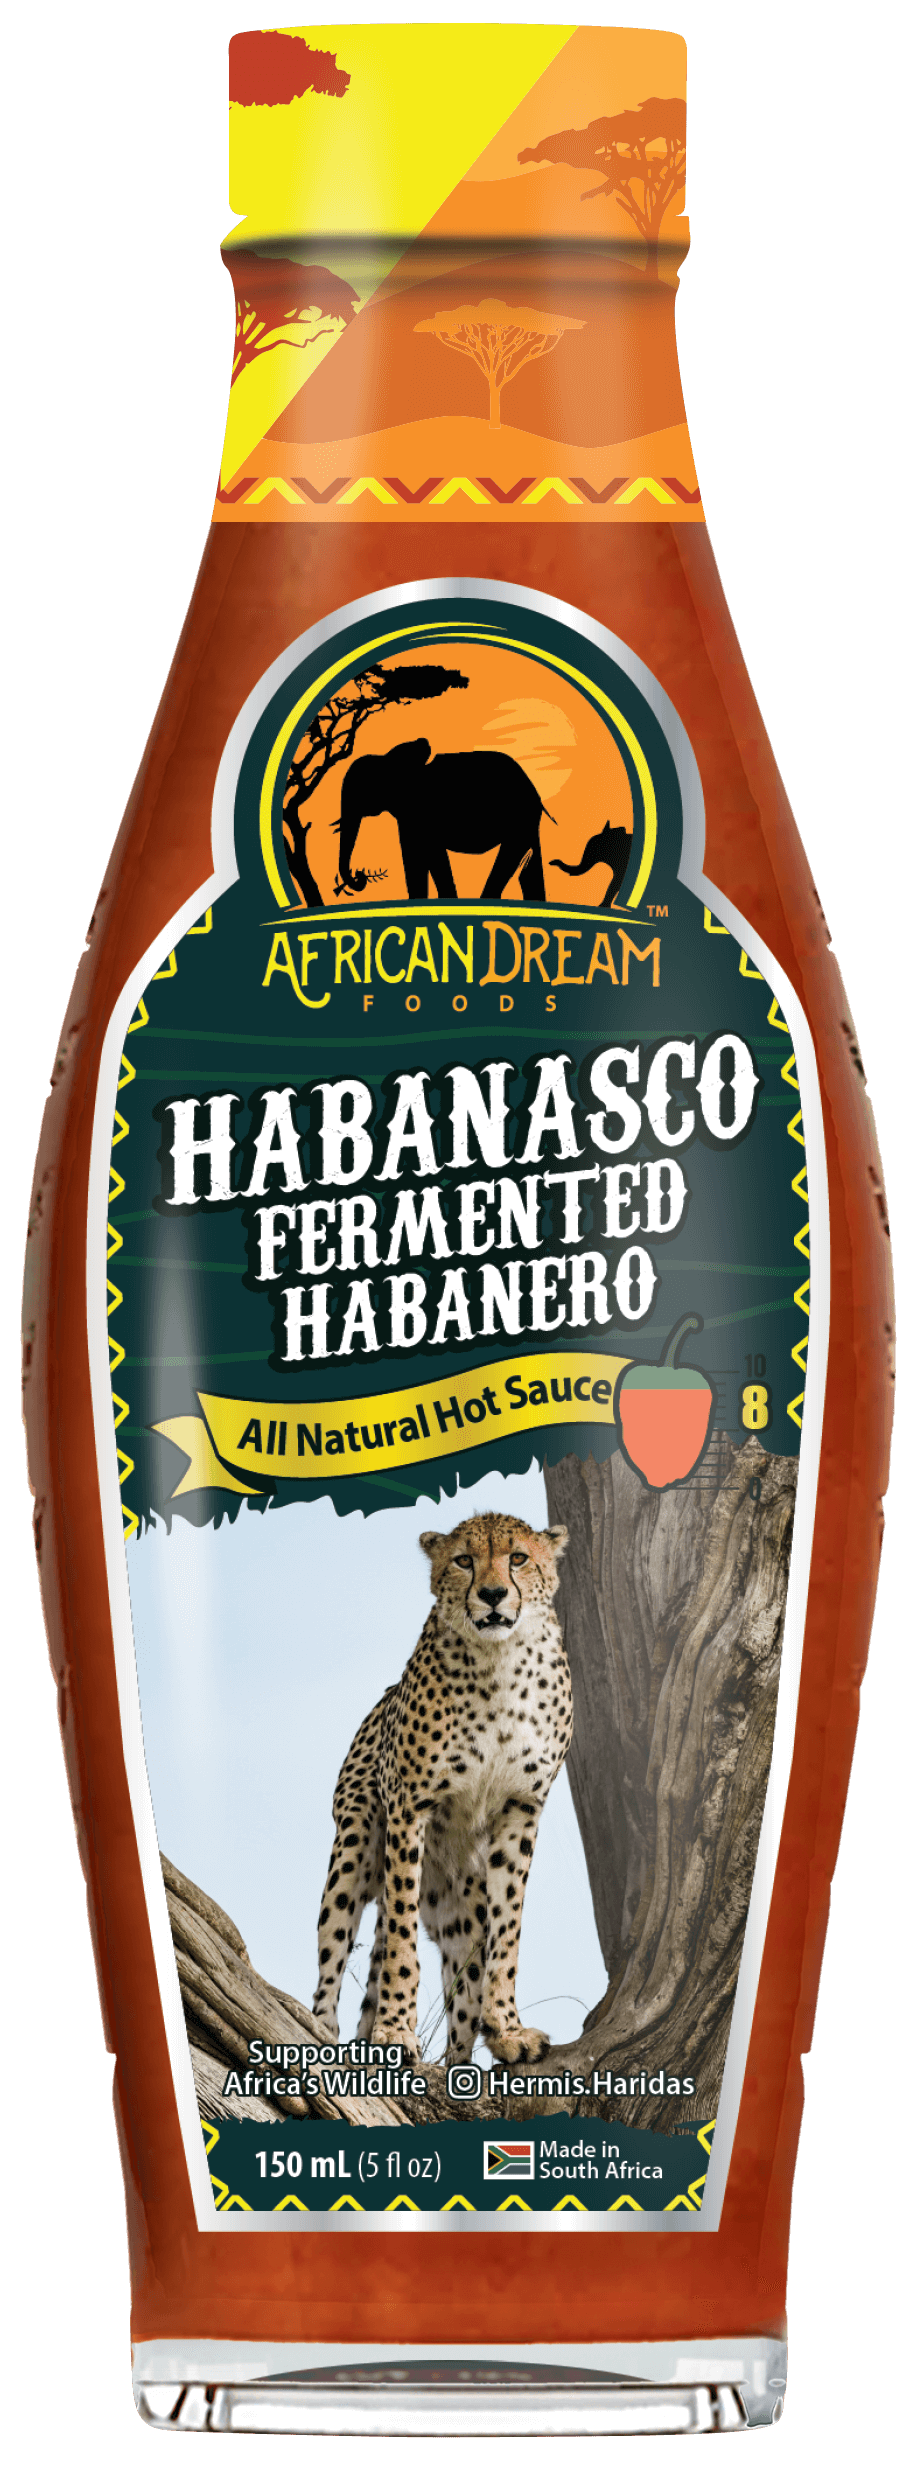 Habanasco - Fermented Habanero Hot Sauce